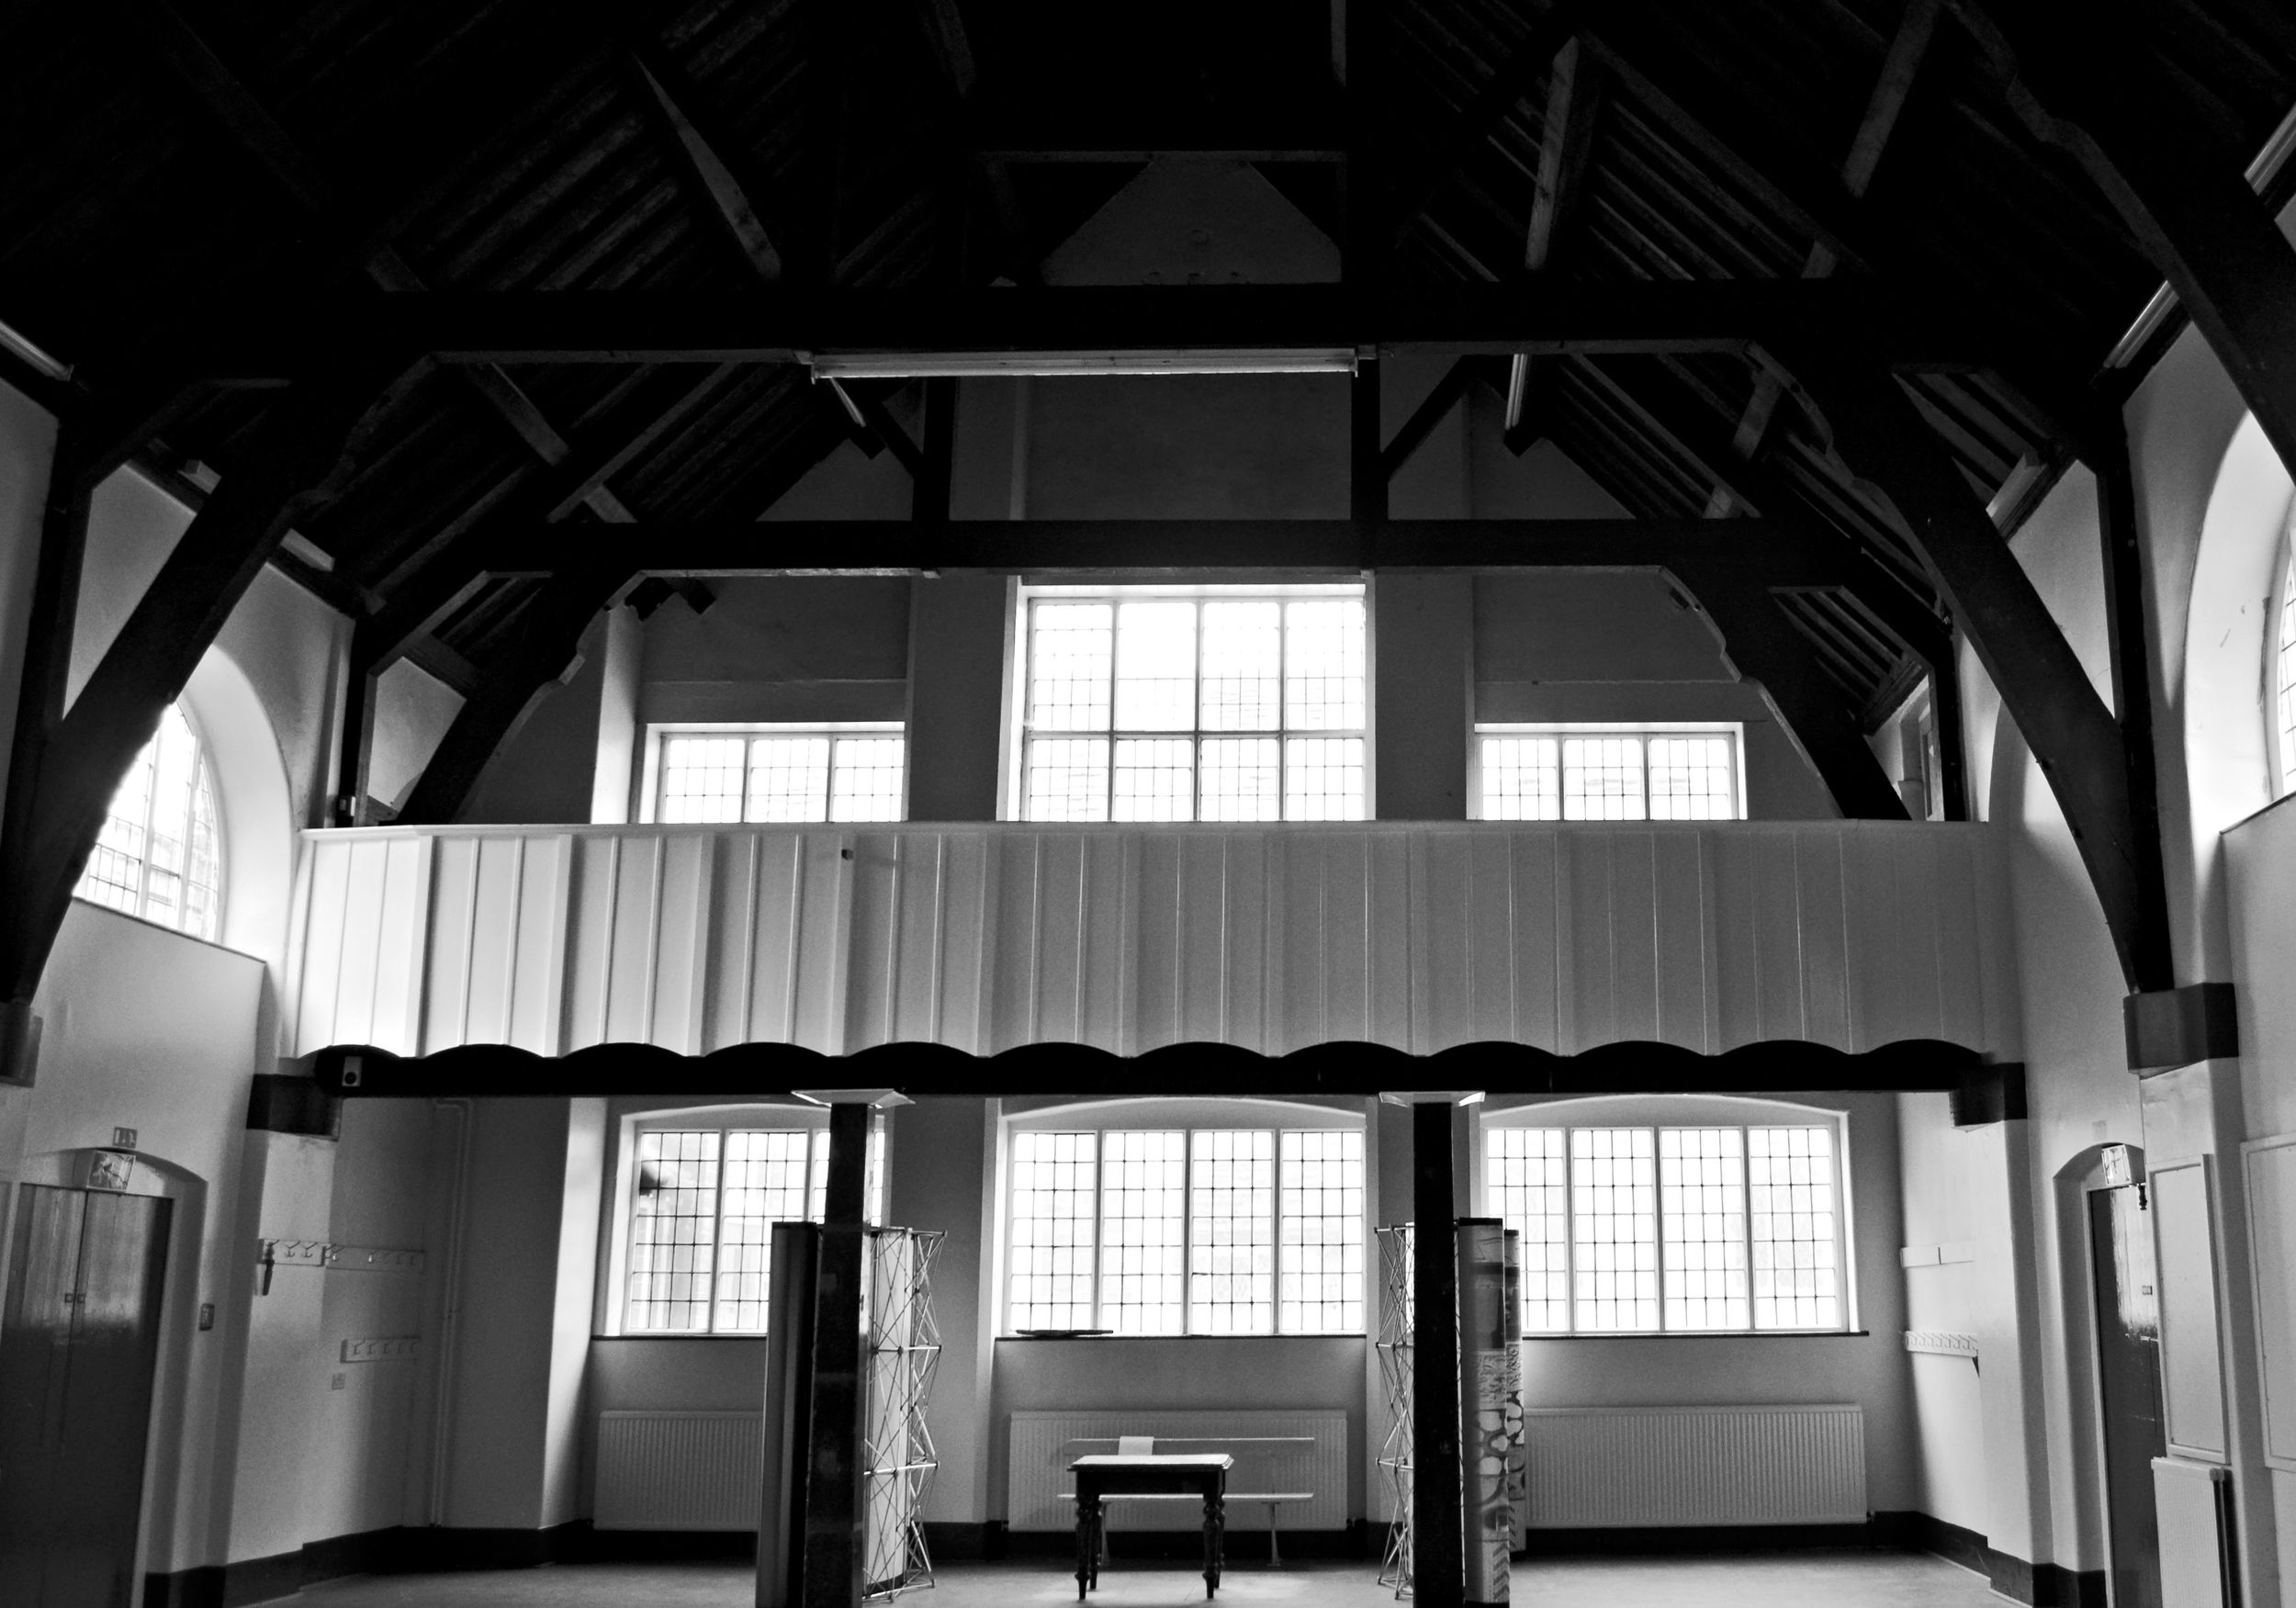 The main hall in the Sunday school